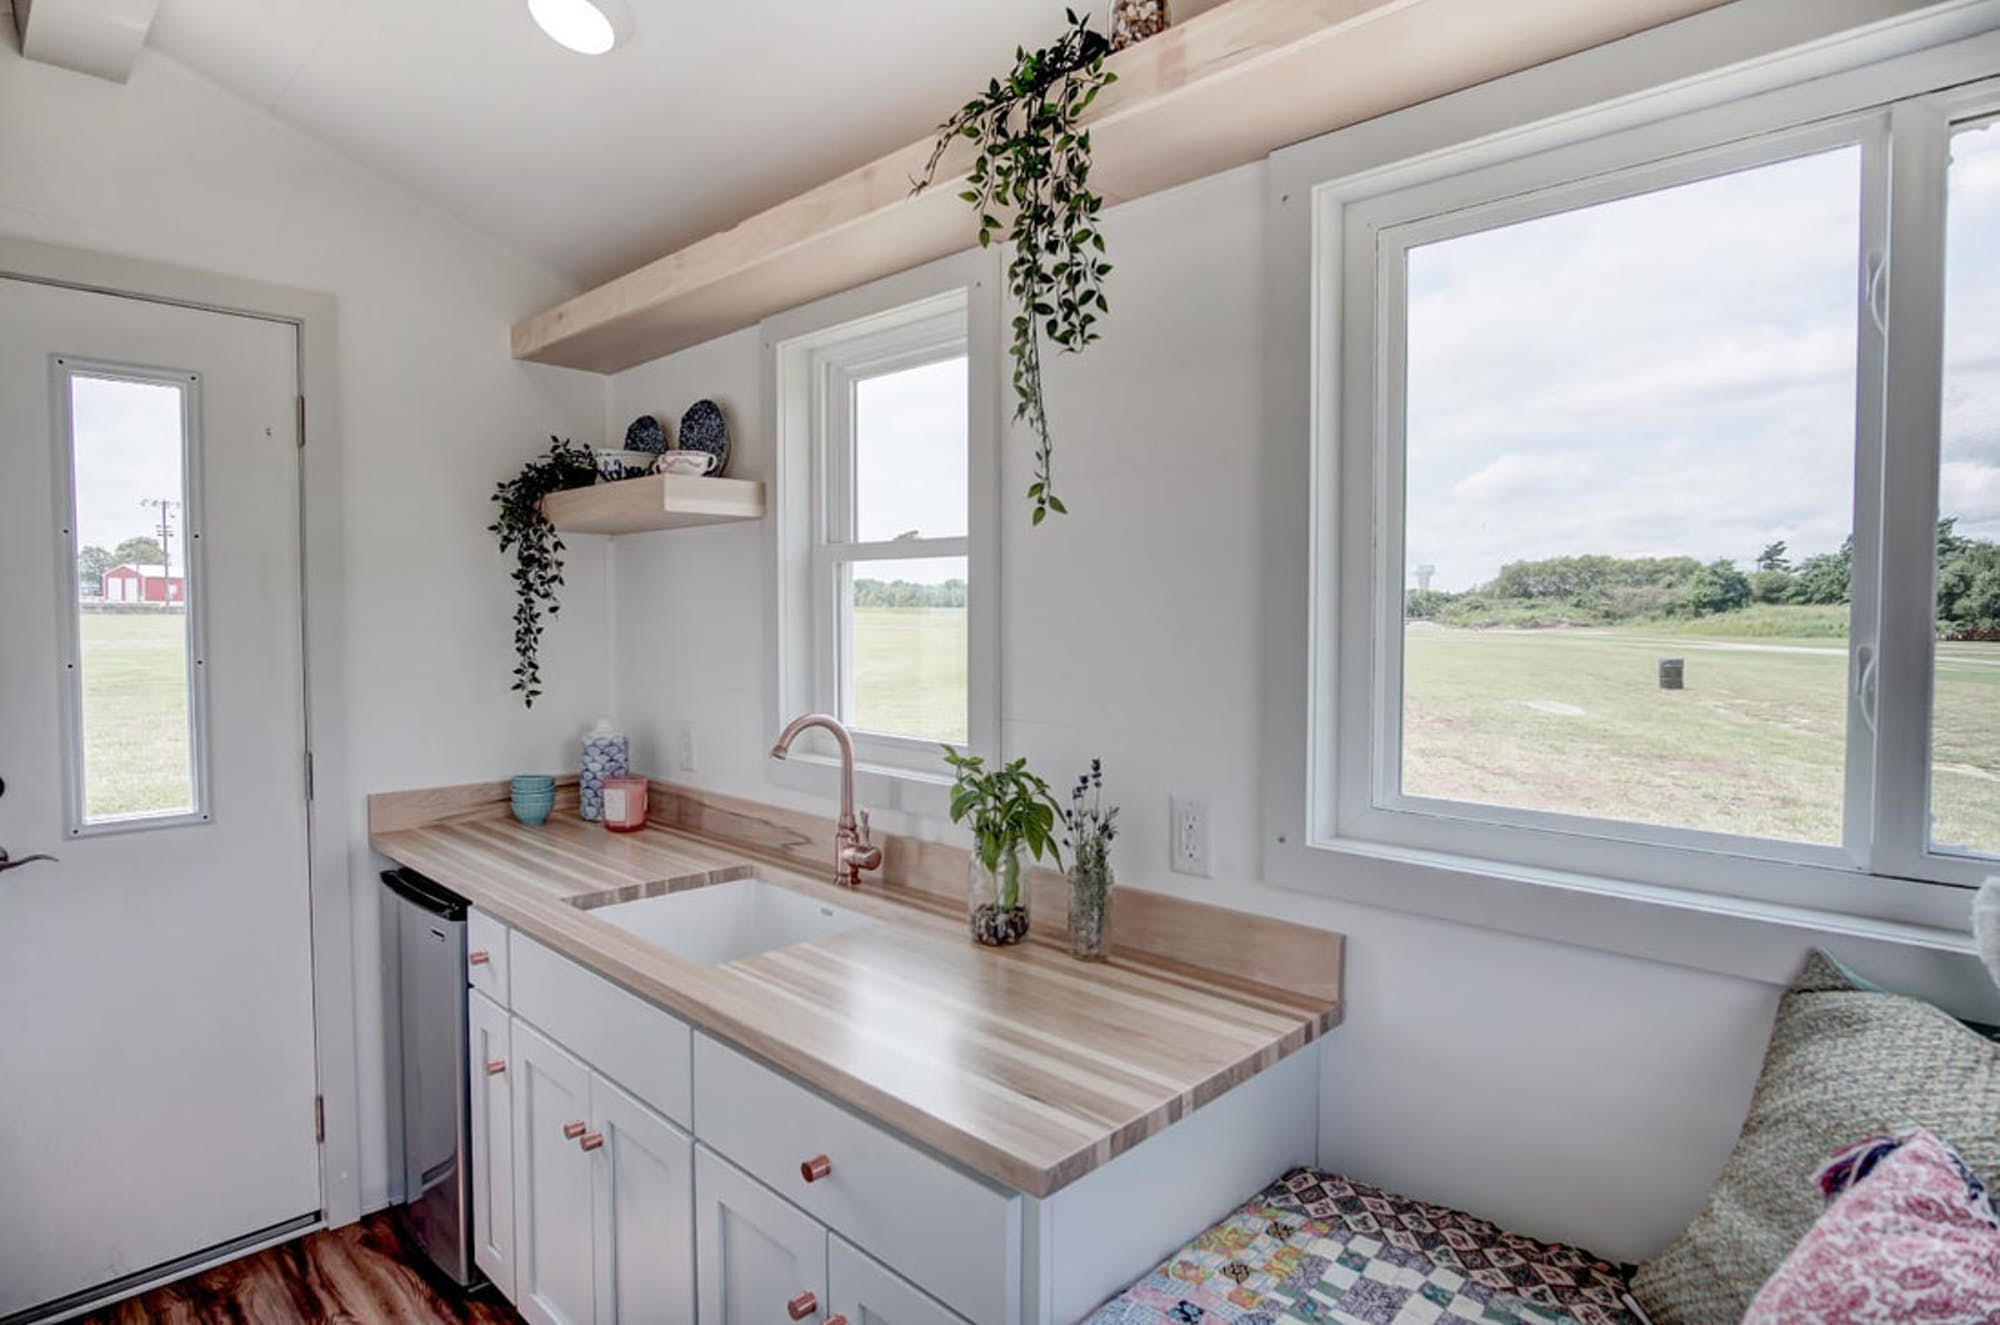 Modern Tiny House Interior: Tiny House Packs All The Essentials In 100 Square Feet